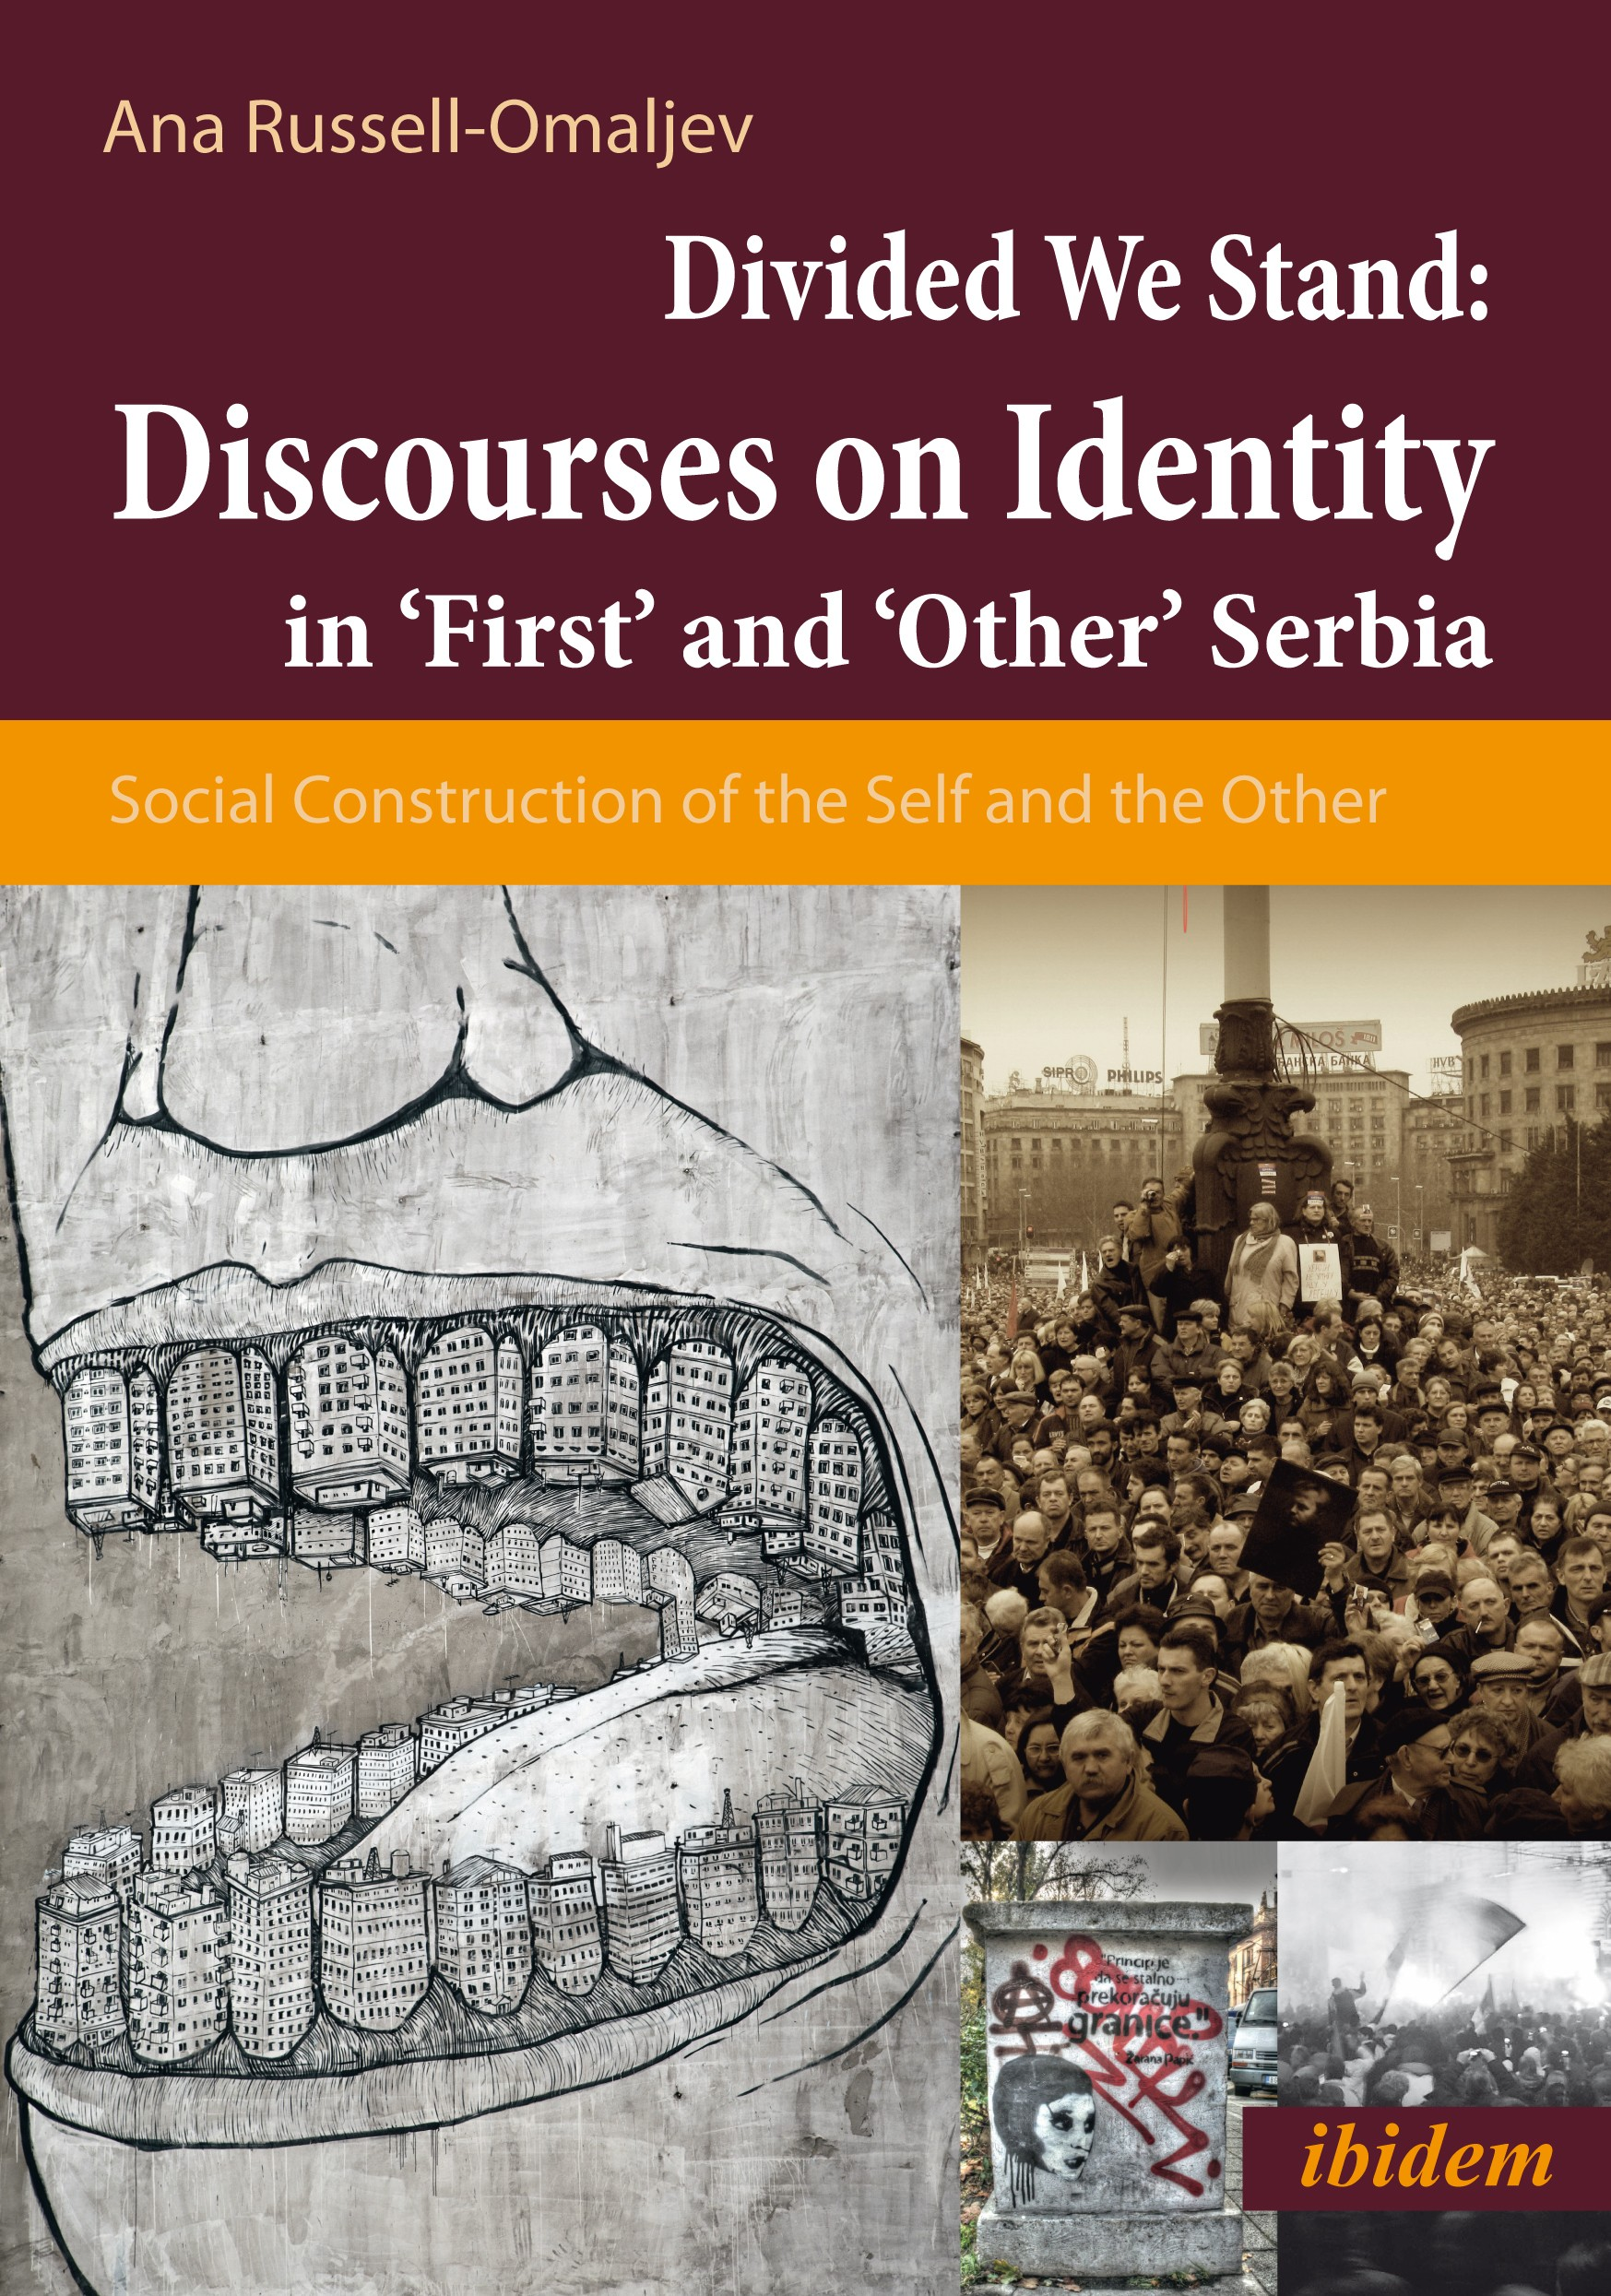 Divided We Stand: Discourses on Identity in 'First' and 'Other' Serbia.